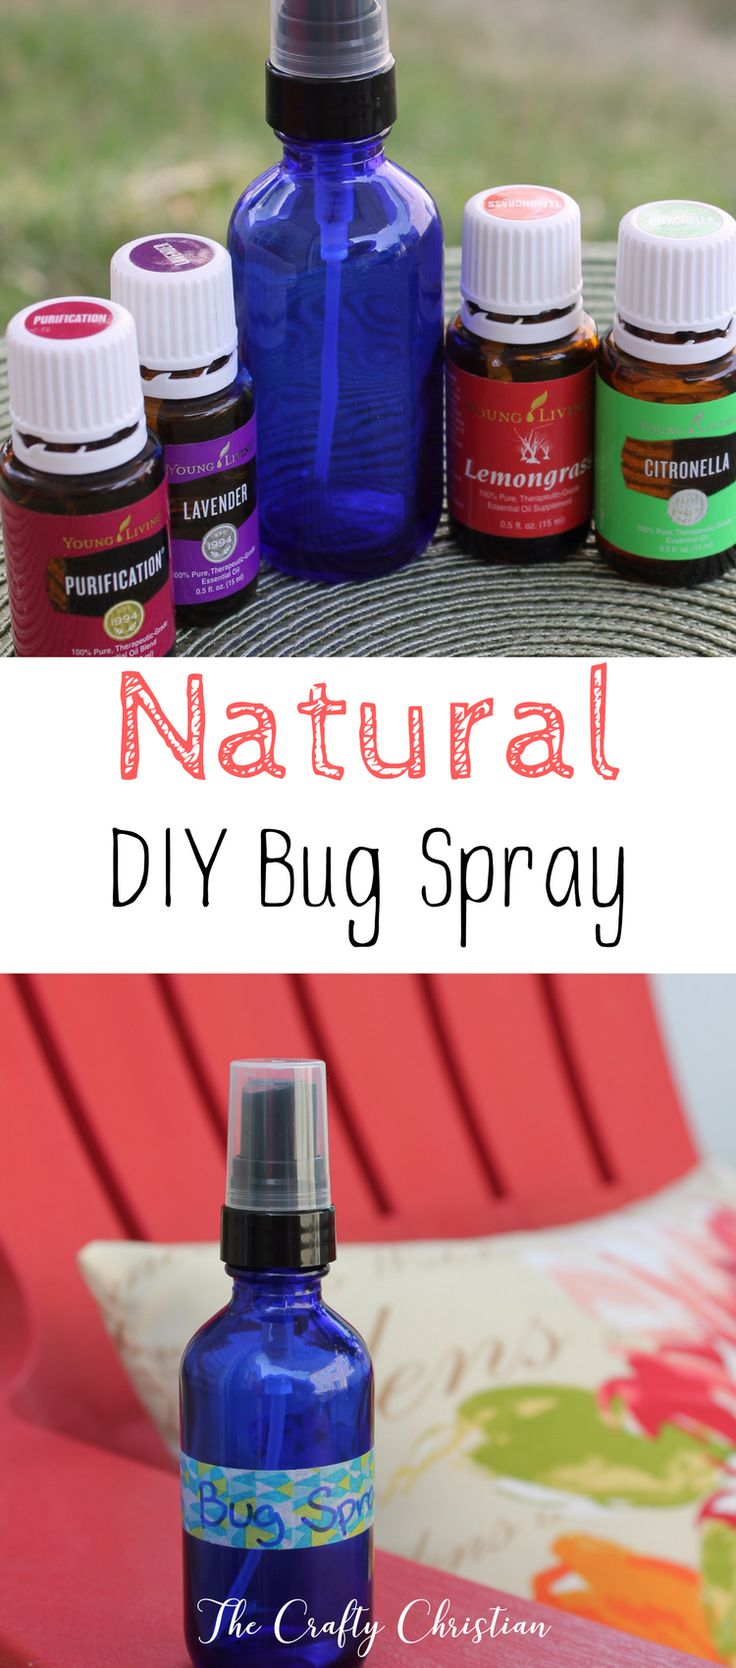 Natural bug spray is perfect for people who are chronically ill, or for kids who can't use DEET for the risk of seizures.  Totally natural, and it works great! via @craft_christian